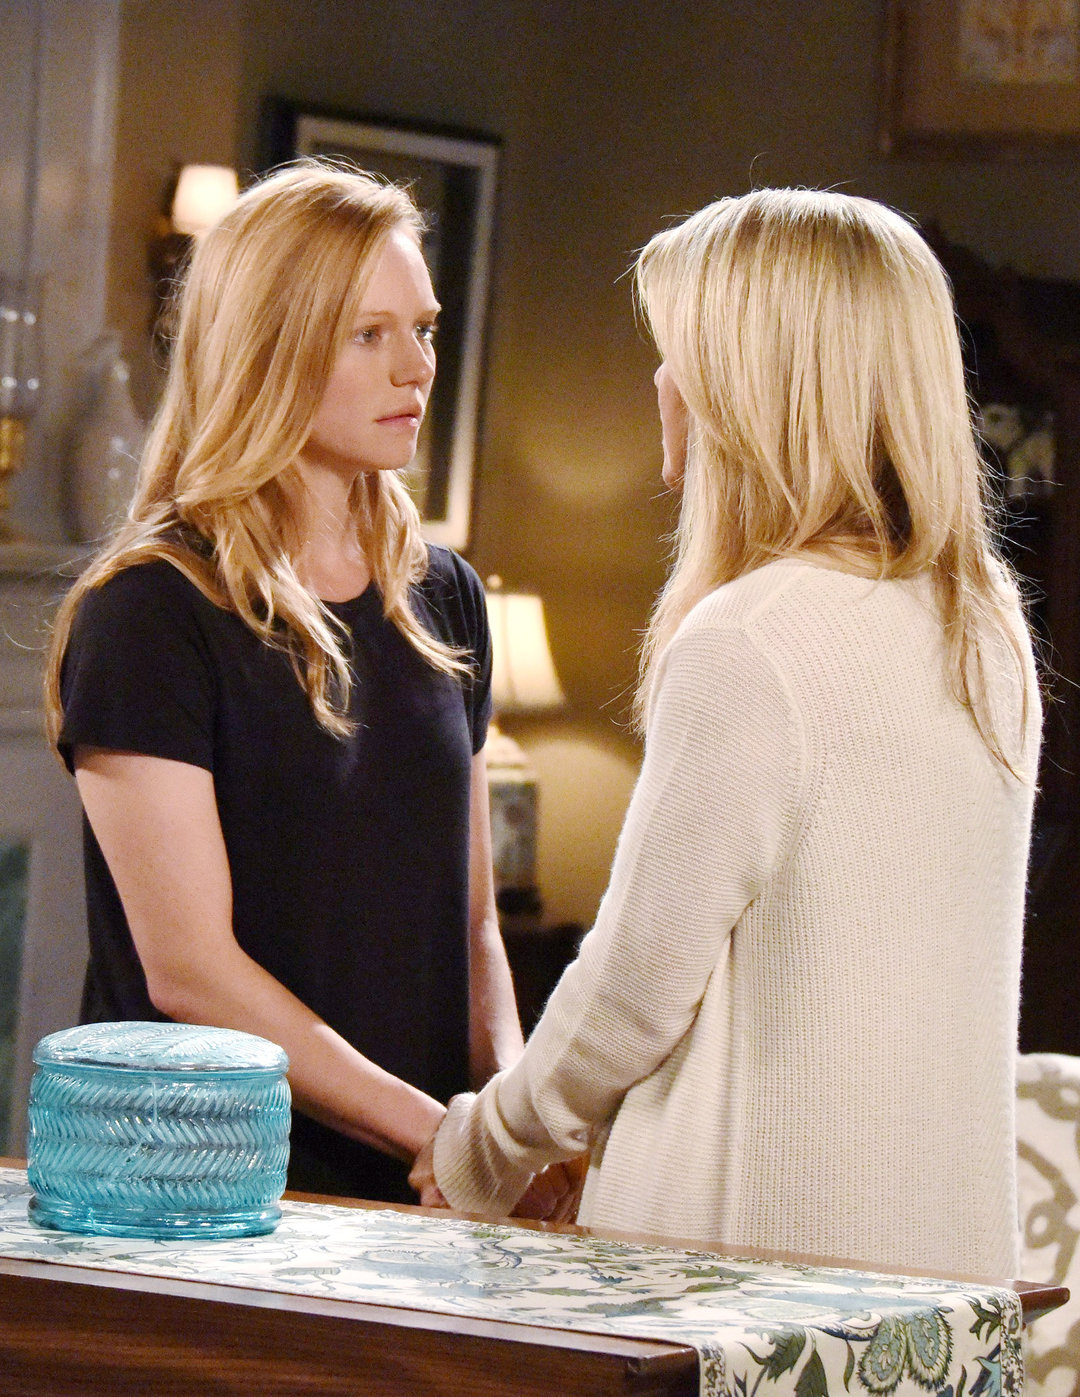 Days of Our Lives Spoilers: Weekly Updates Nov. 28 to Dec. 2 - Stunning Secrets, Family Conflict and Blooming Love